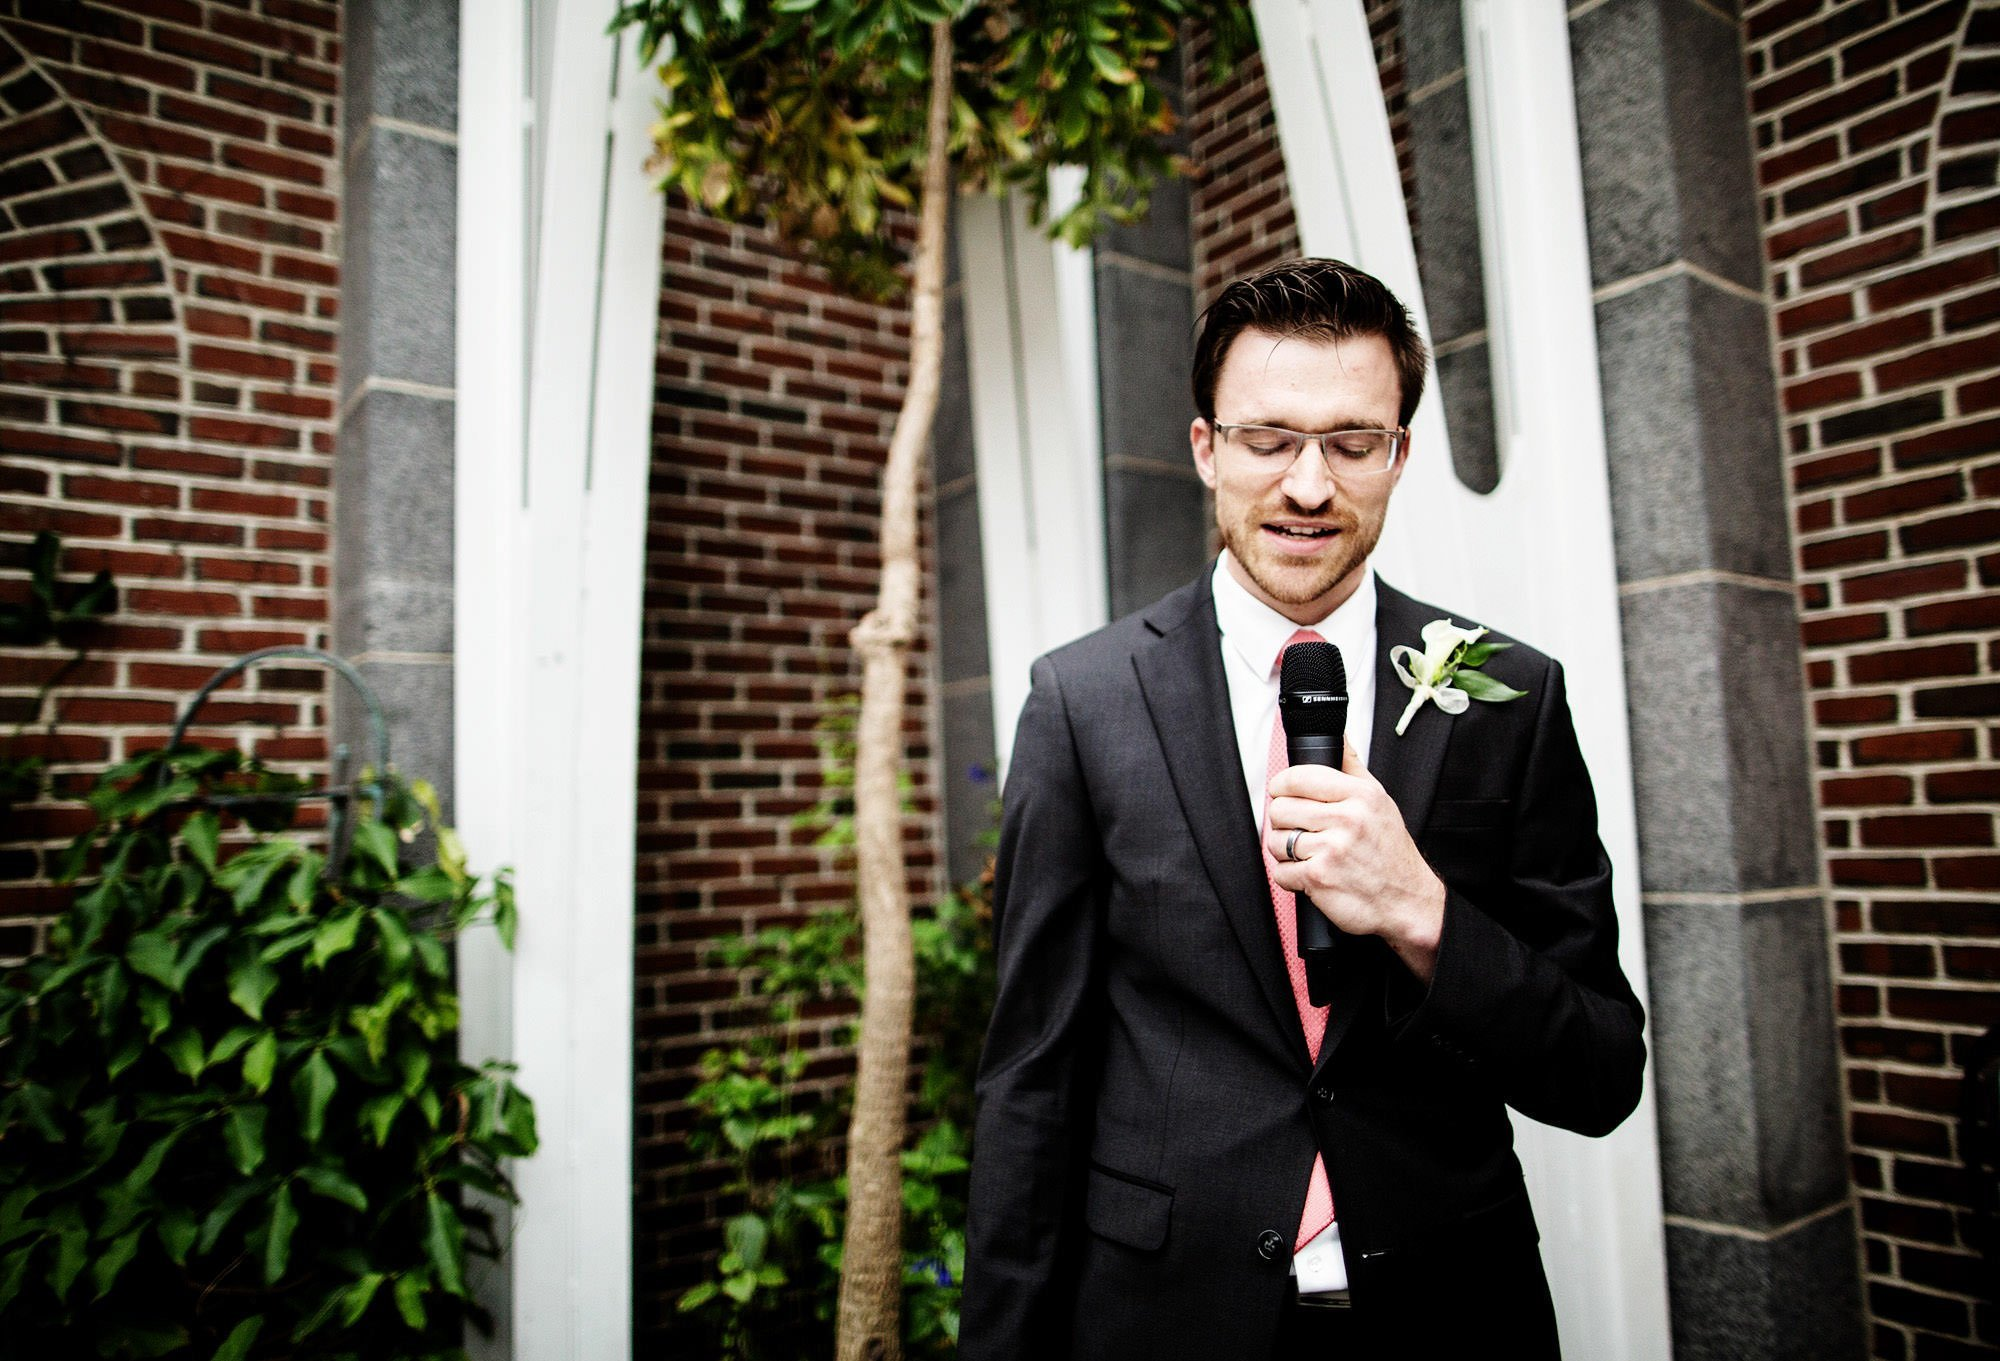 The best man gives a toast during the Tower Hill Botanic Garden Wedding reception.